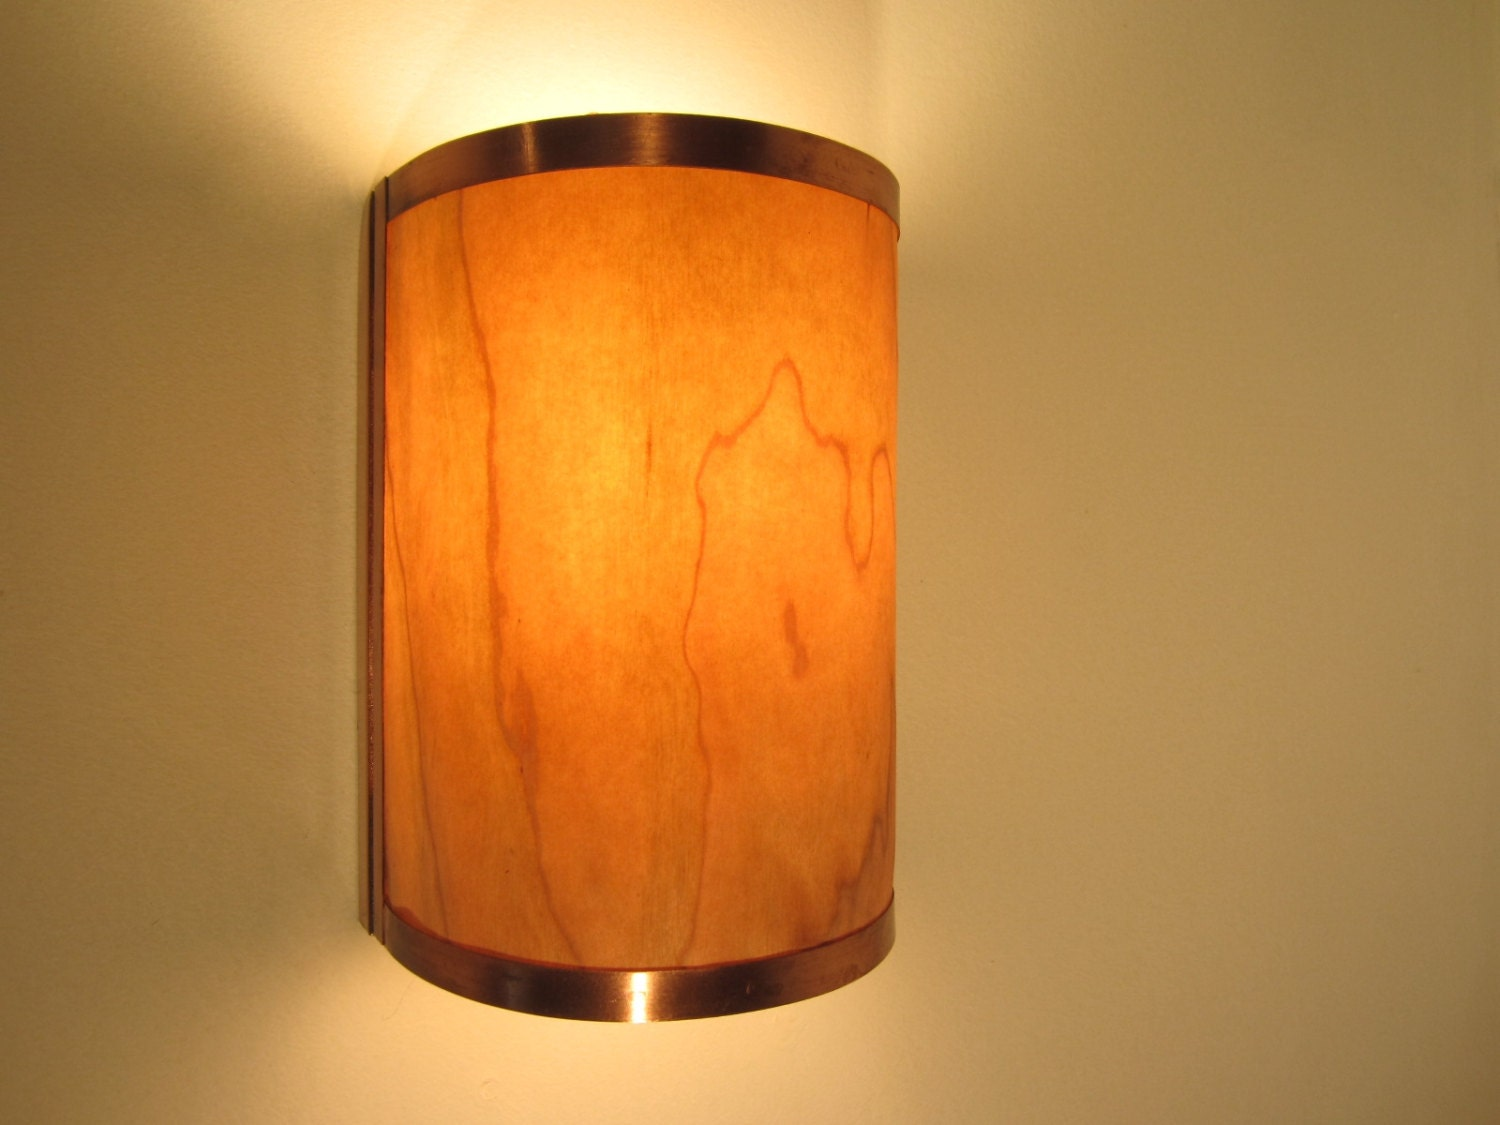 Decorative Electric Wall Sconces : Rustic Wall Sconce Light Copper with Cherry Wood Electric